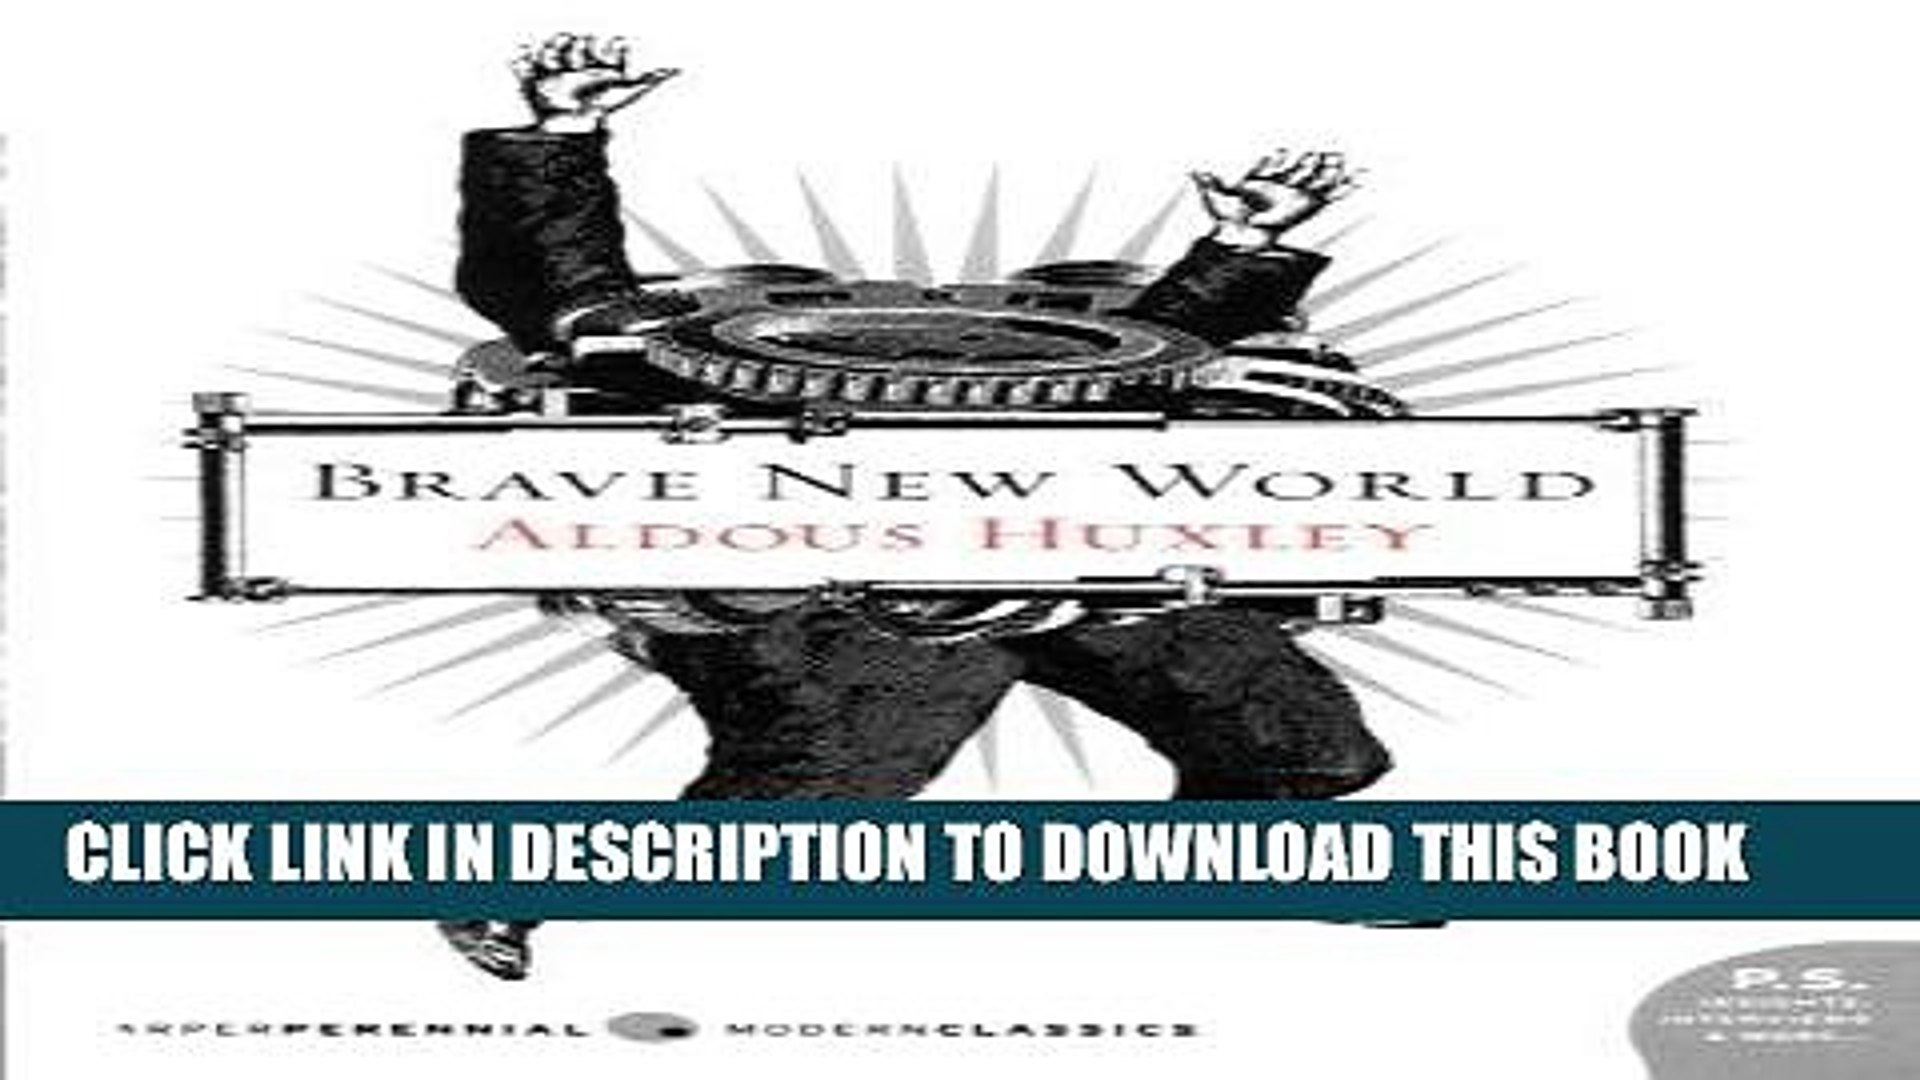 [Free Read] Brave New World Free Online